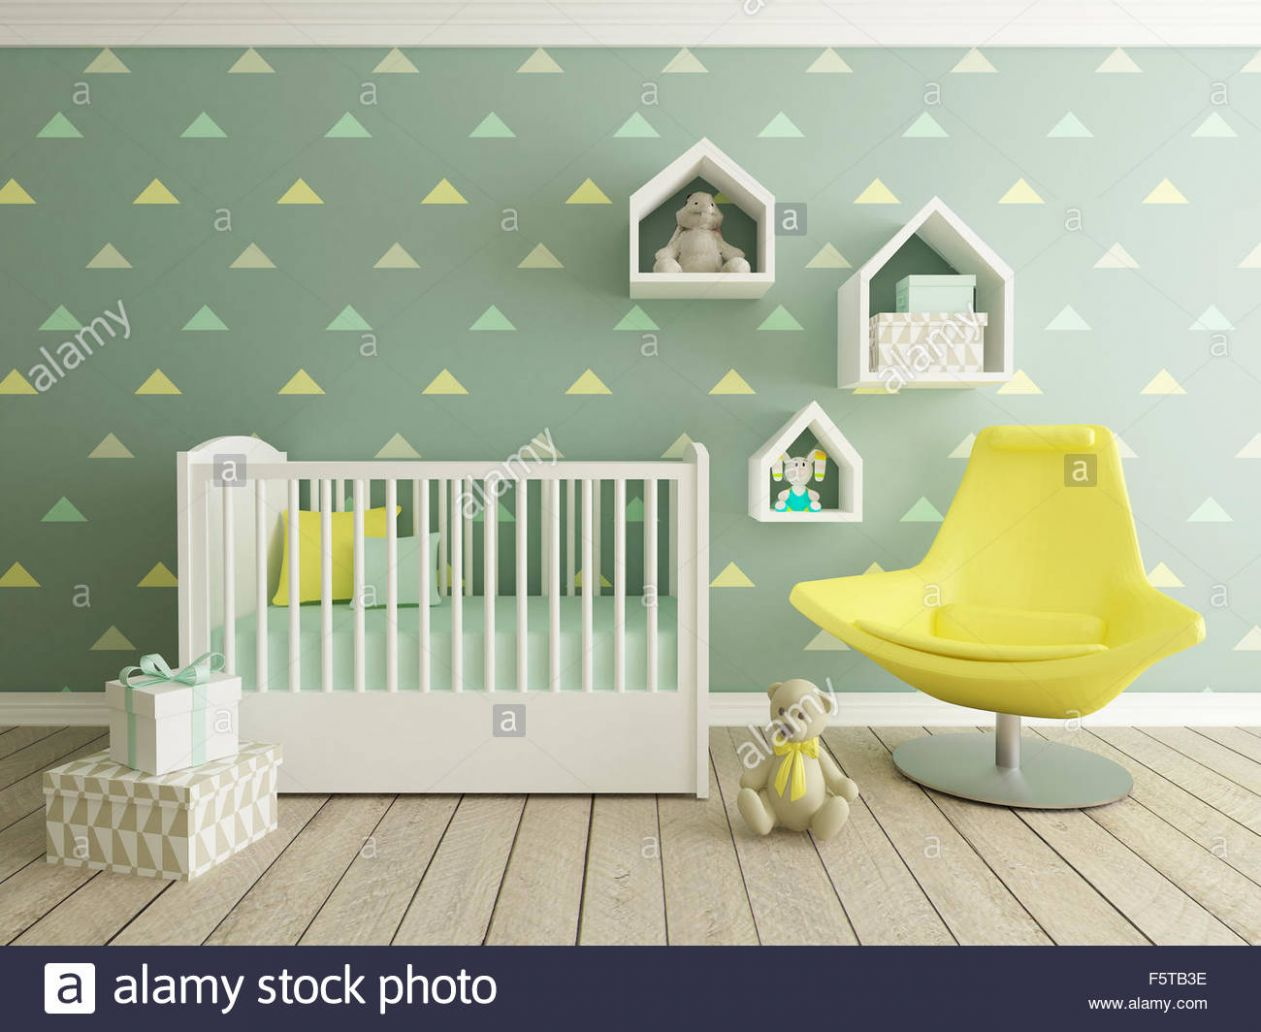 baby room interior, nursery, 9d render Stock Photo: 9 - Alamy - baby room yellow and green